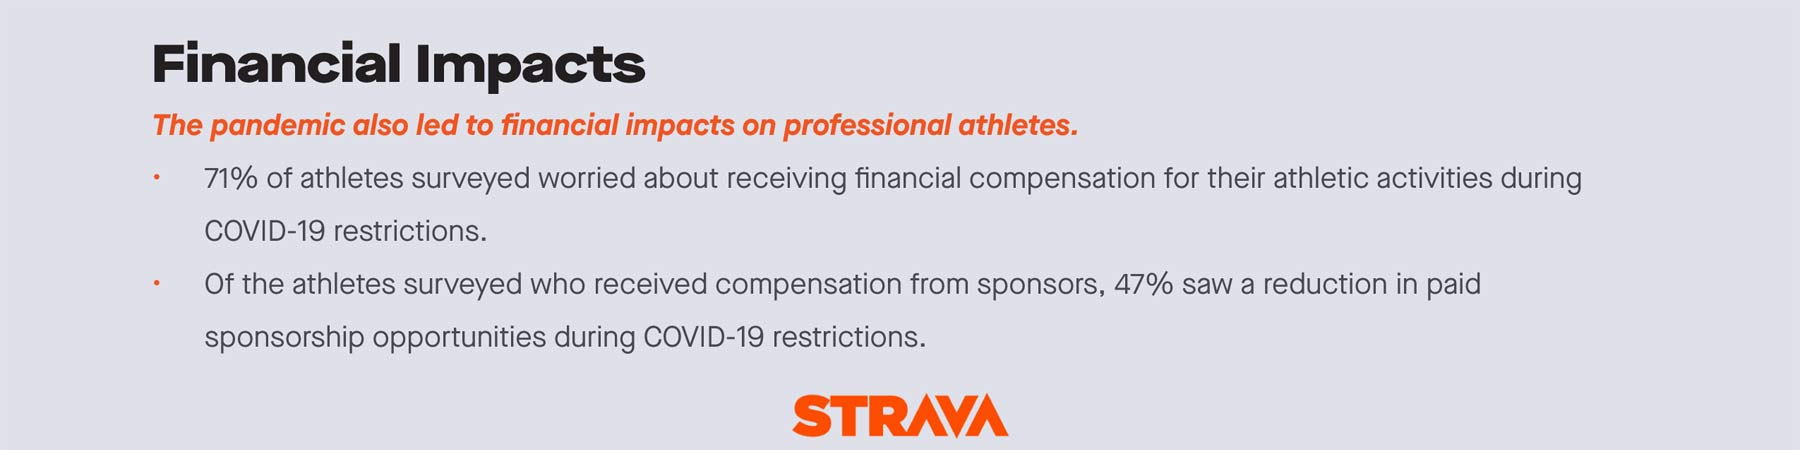 Strava + Stanford professional athlete COVID-19 impacts study, Financial Impacts